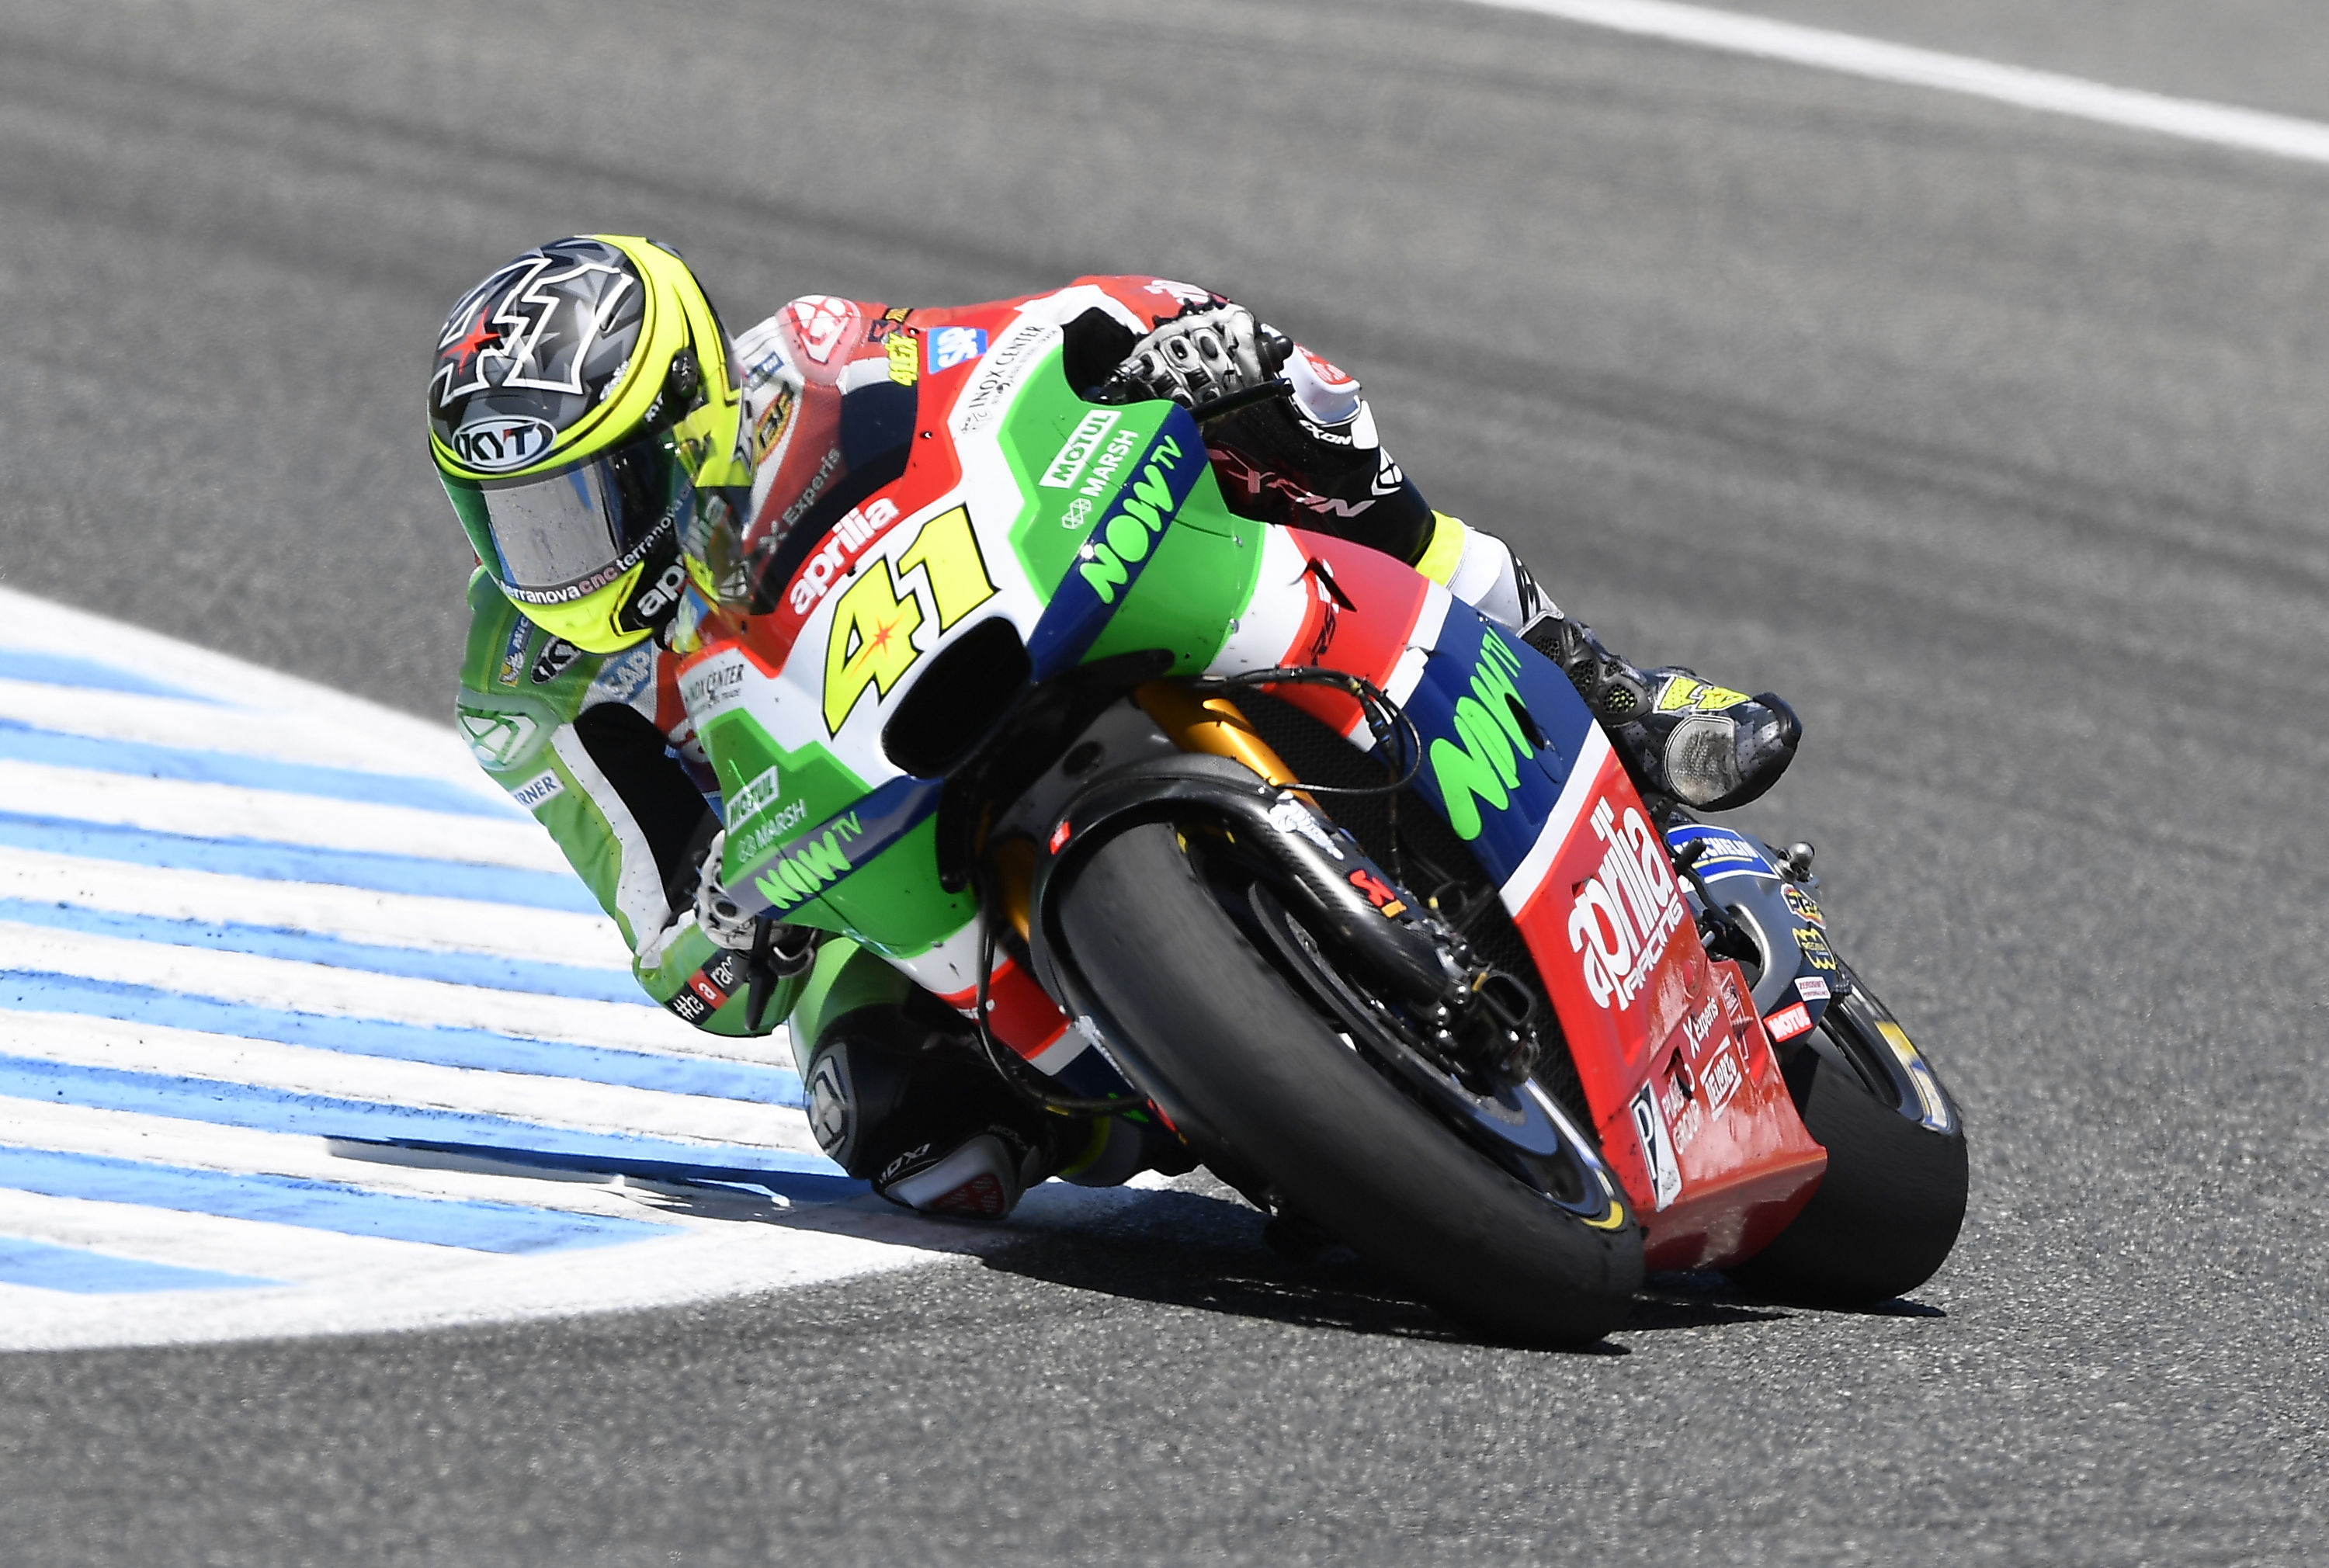 A good top-10 placement for Aleix Espargaró after a demanding race in Jerez - vroom-magazine.com